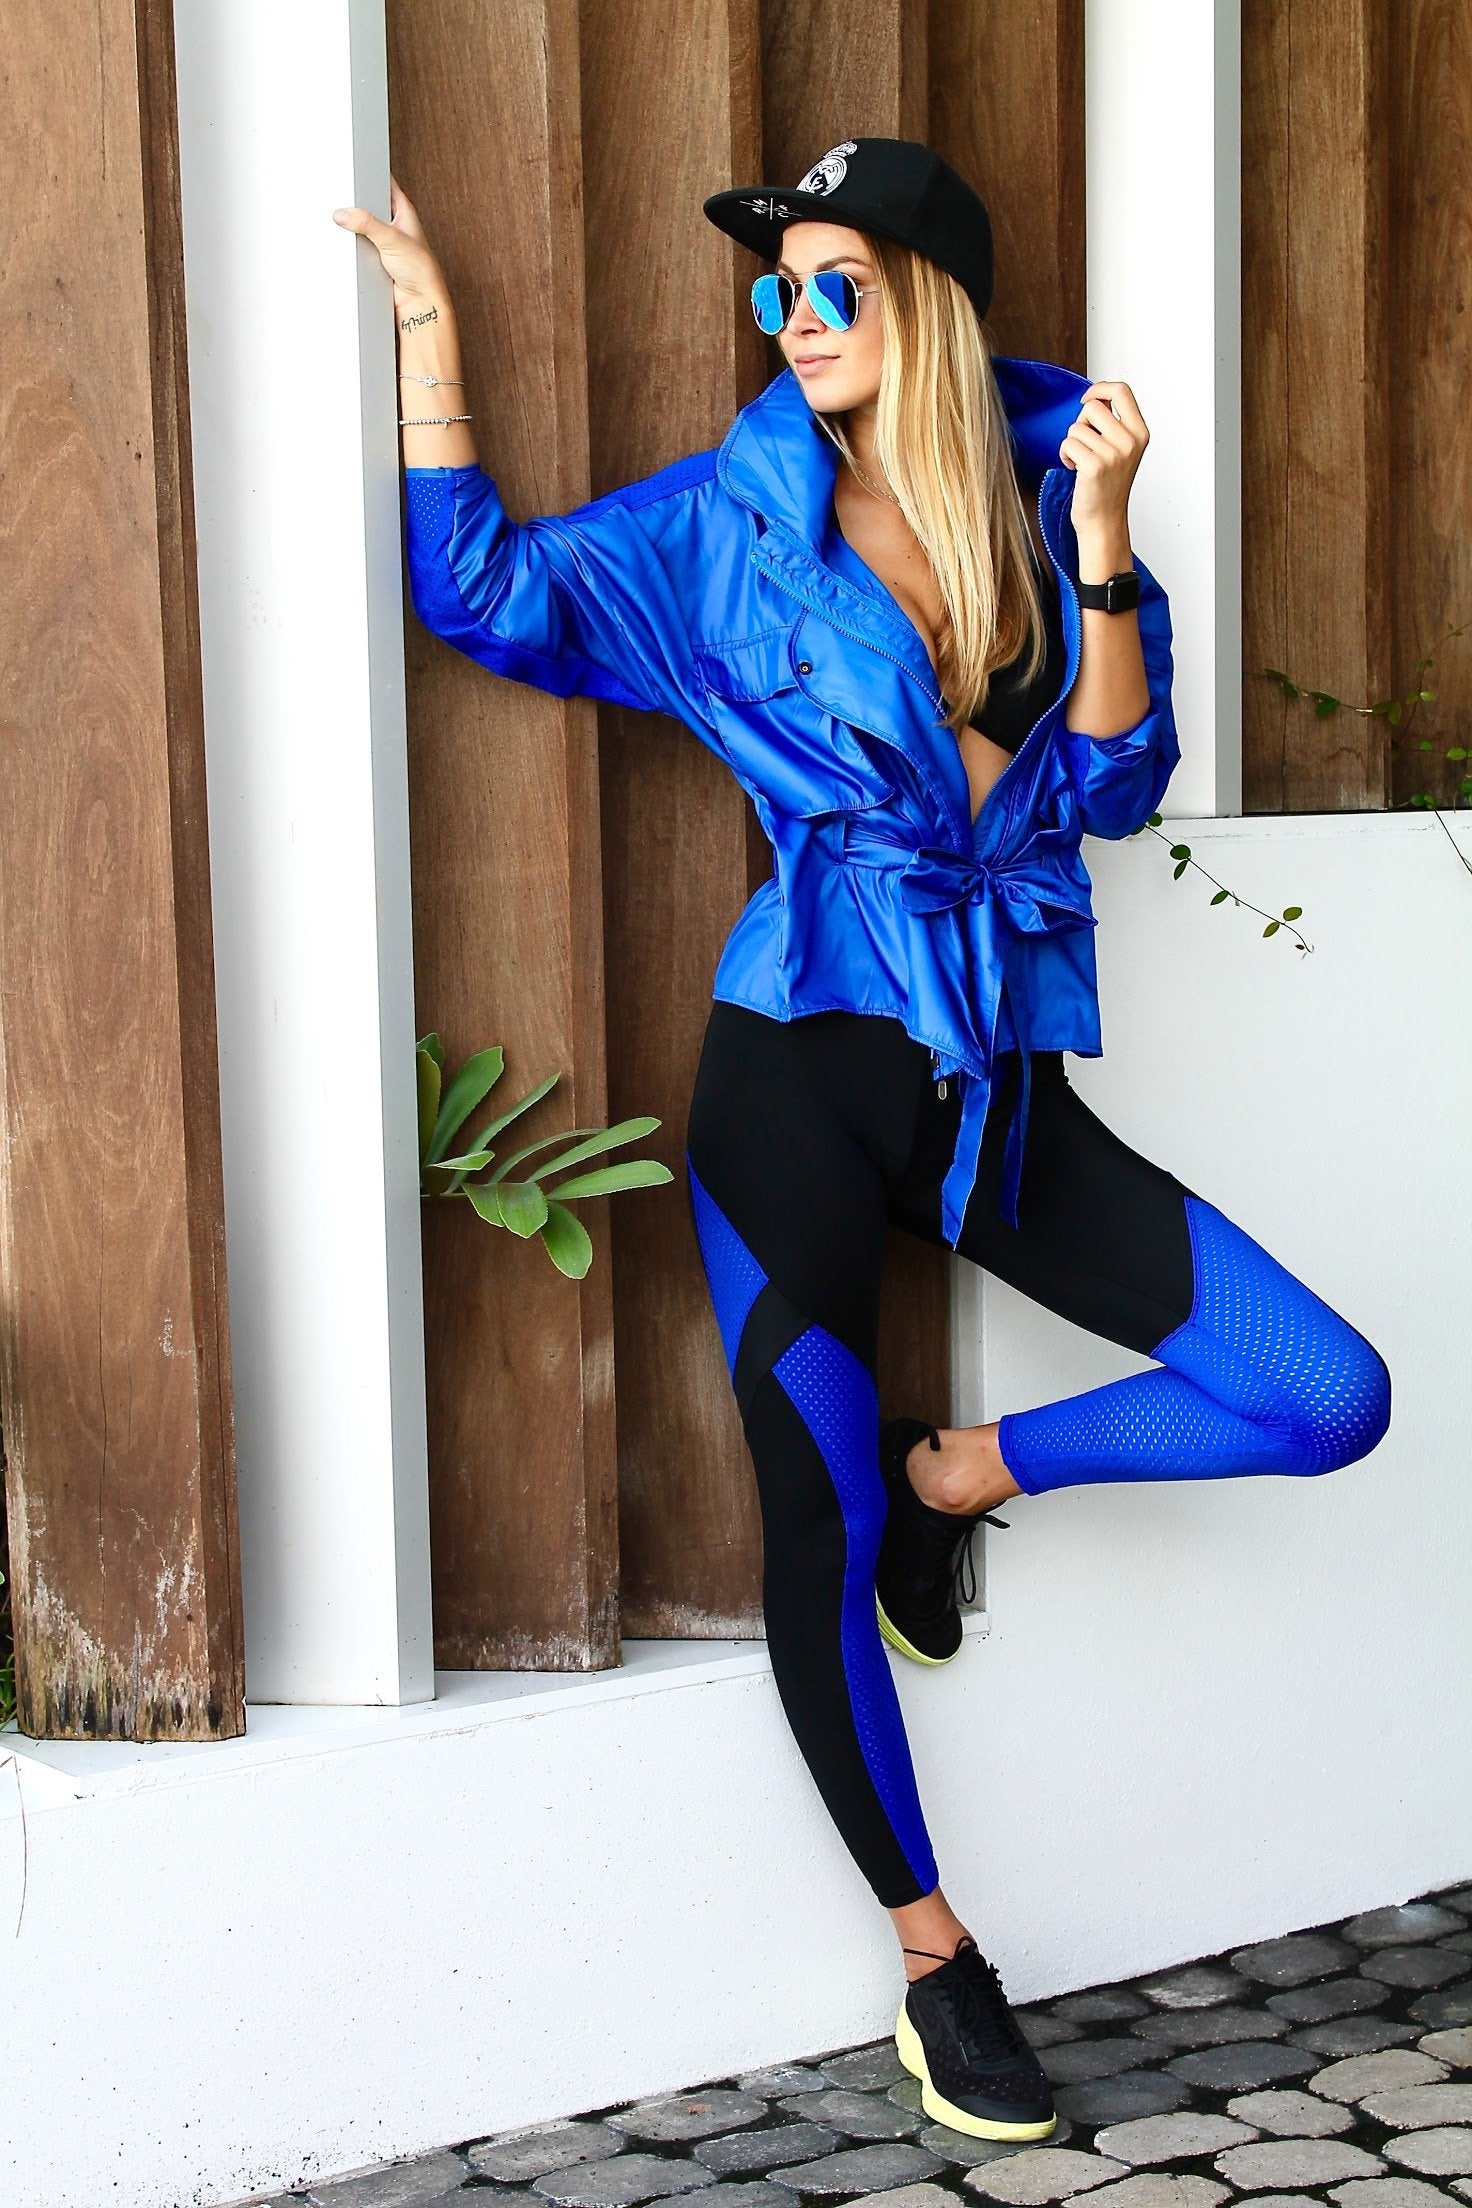 Marathon Mesh Legging - Royal Blue / Black